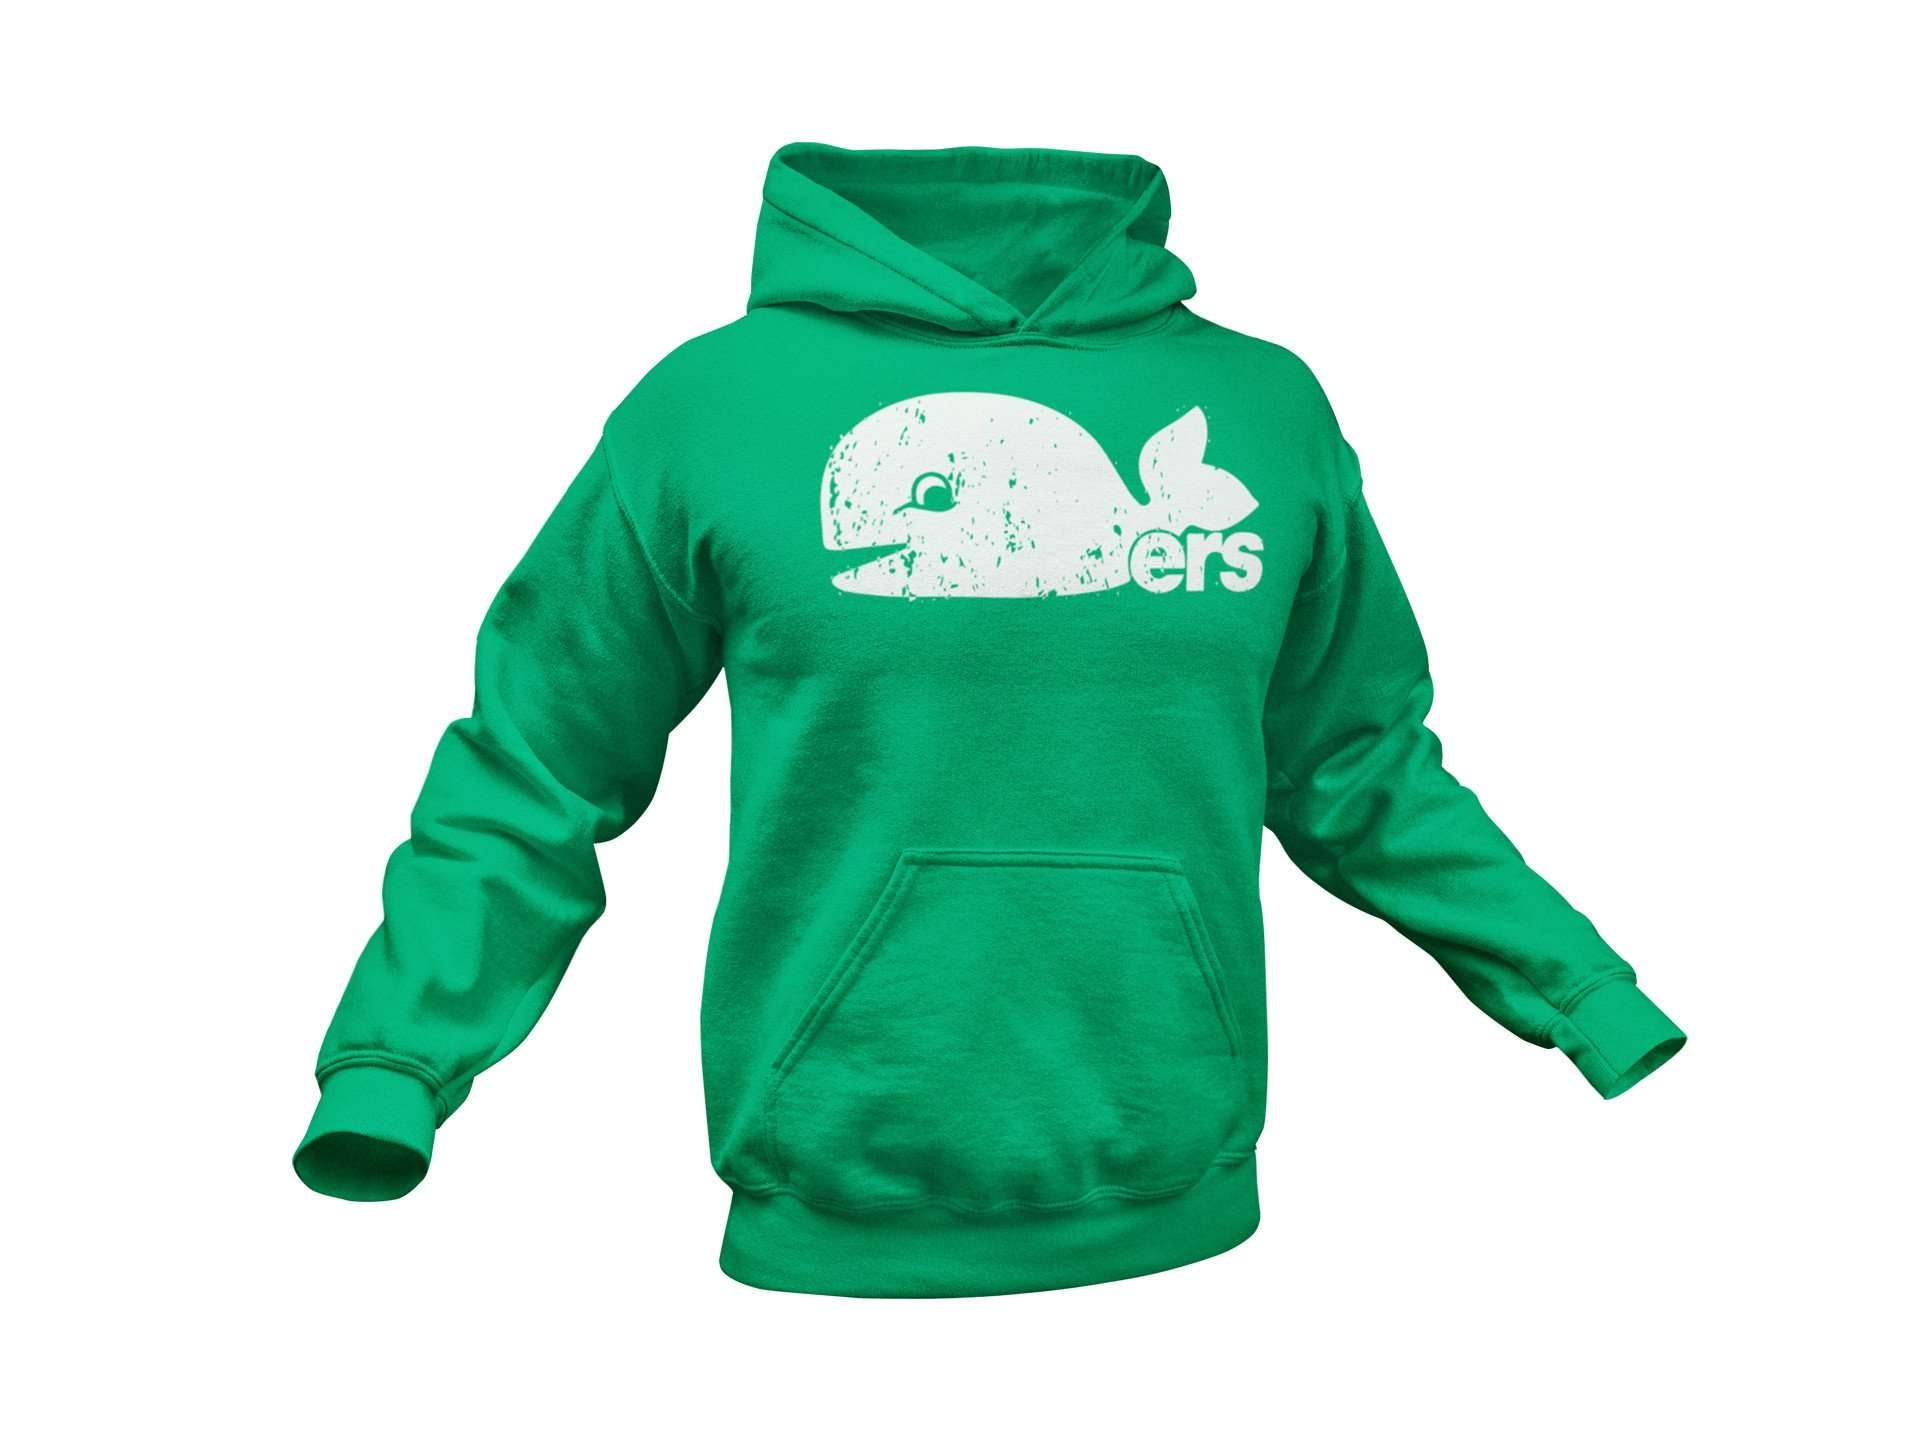 Hartford Whalers Pucky Inspired Pullover Hoodie